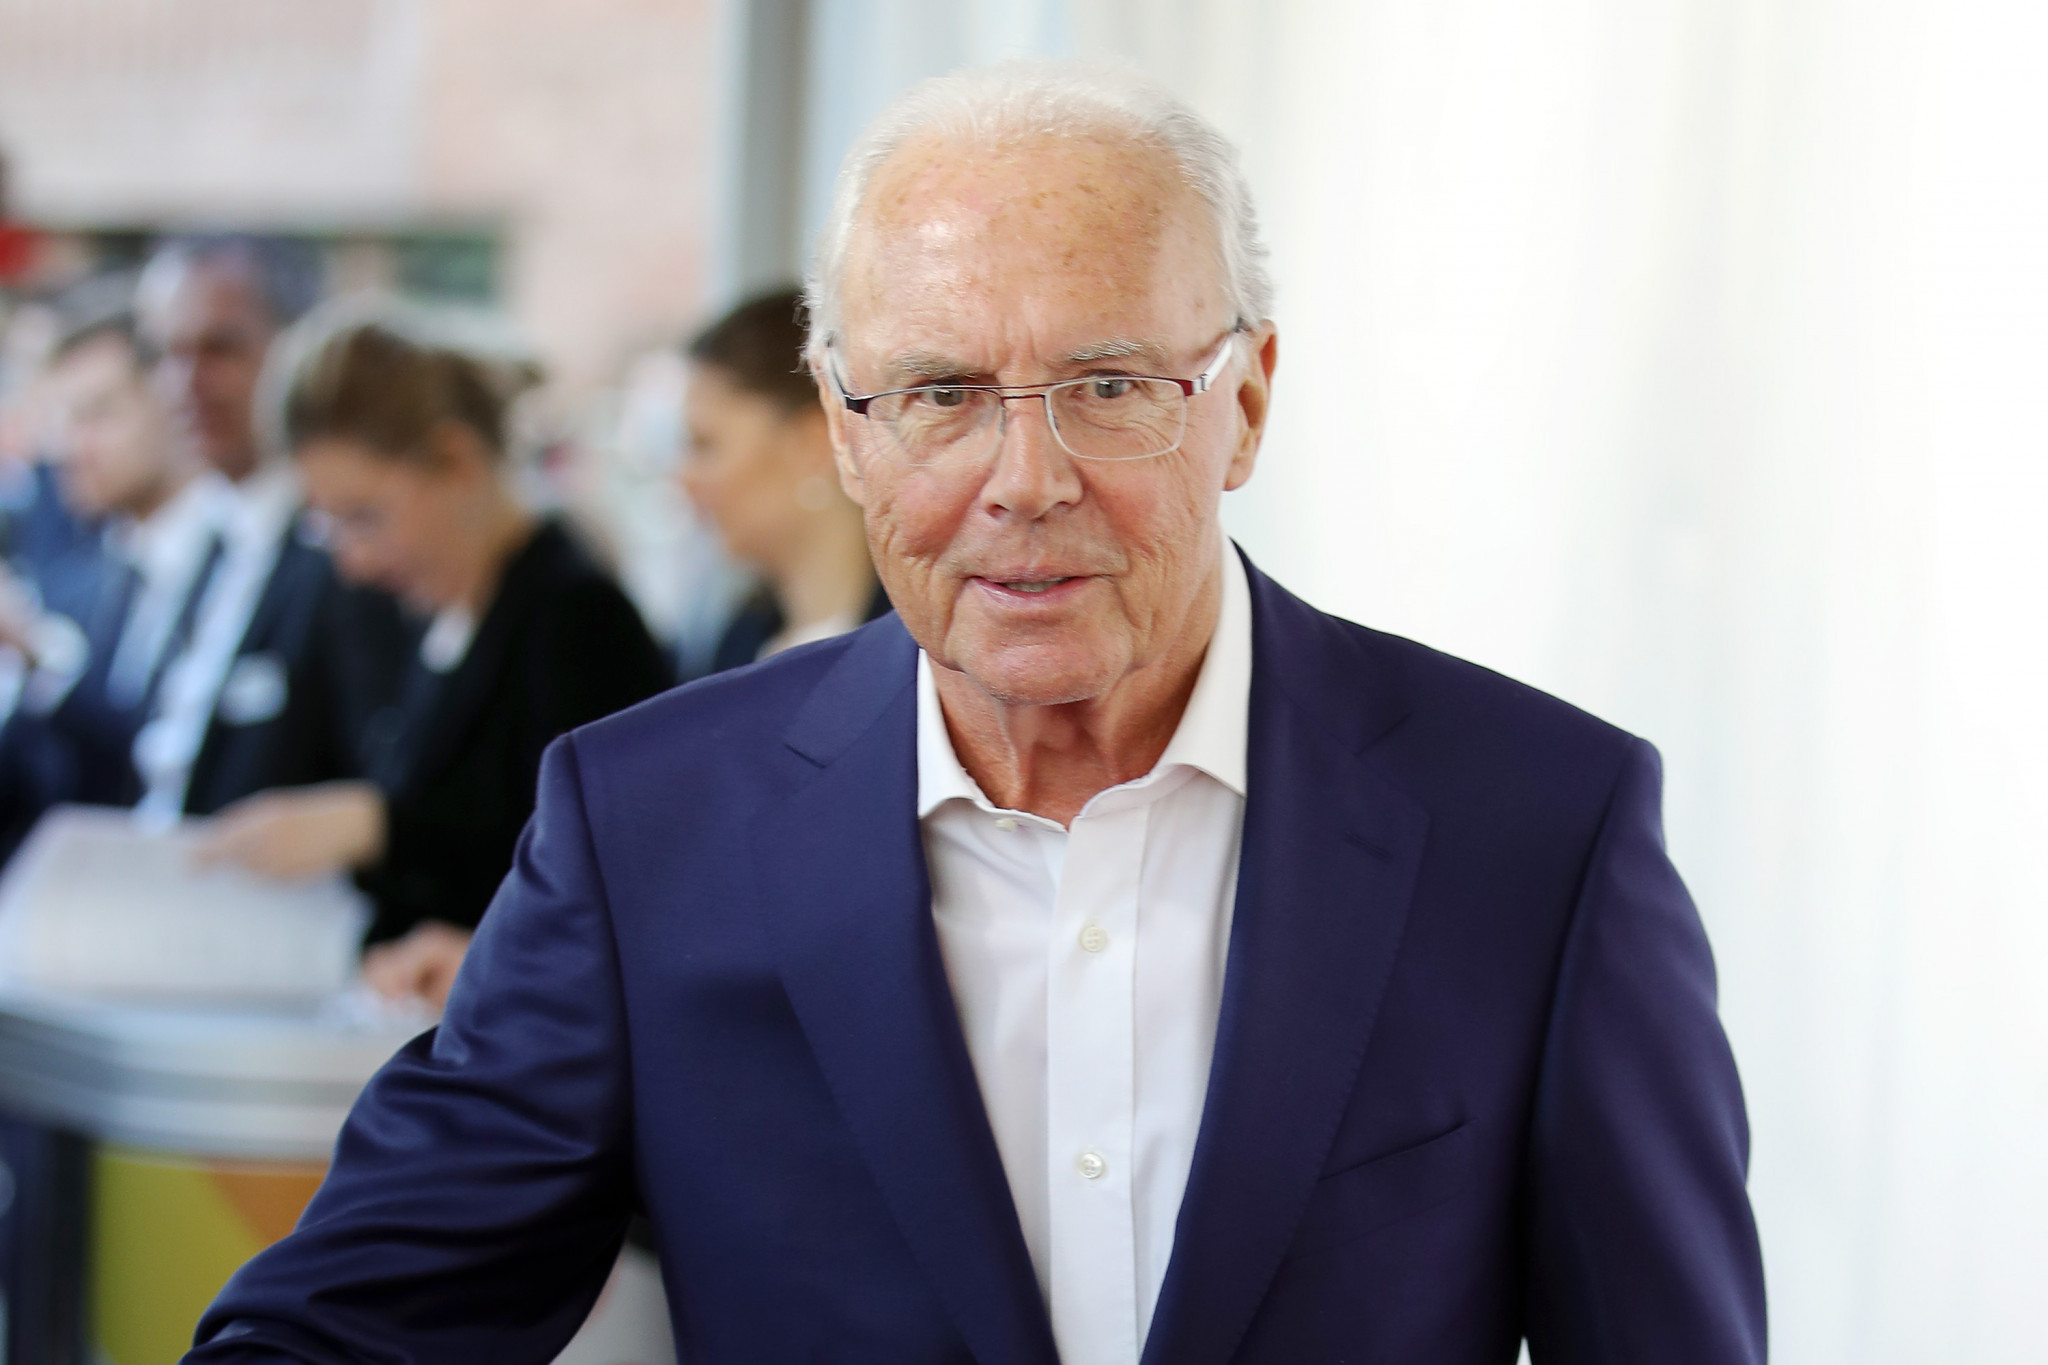 FIFA Ethics Committee rules Beckenbauer, Zwanziger and Schmidt cannot be prosecuted in bribery investigation